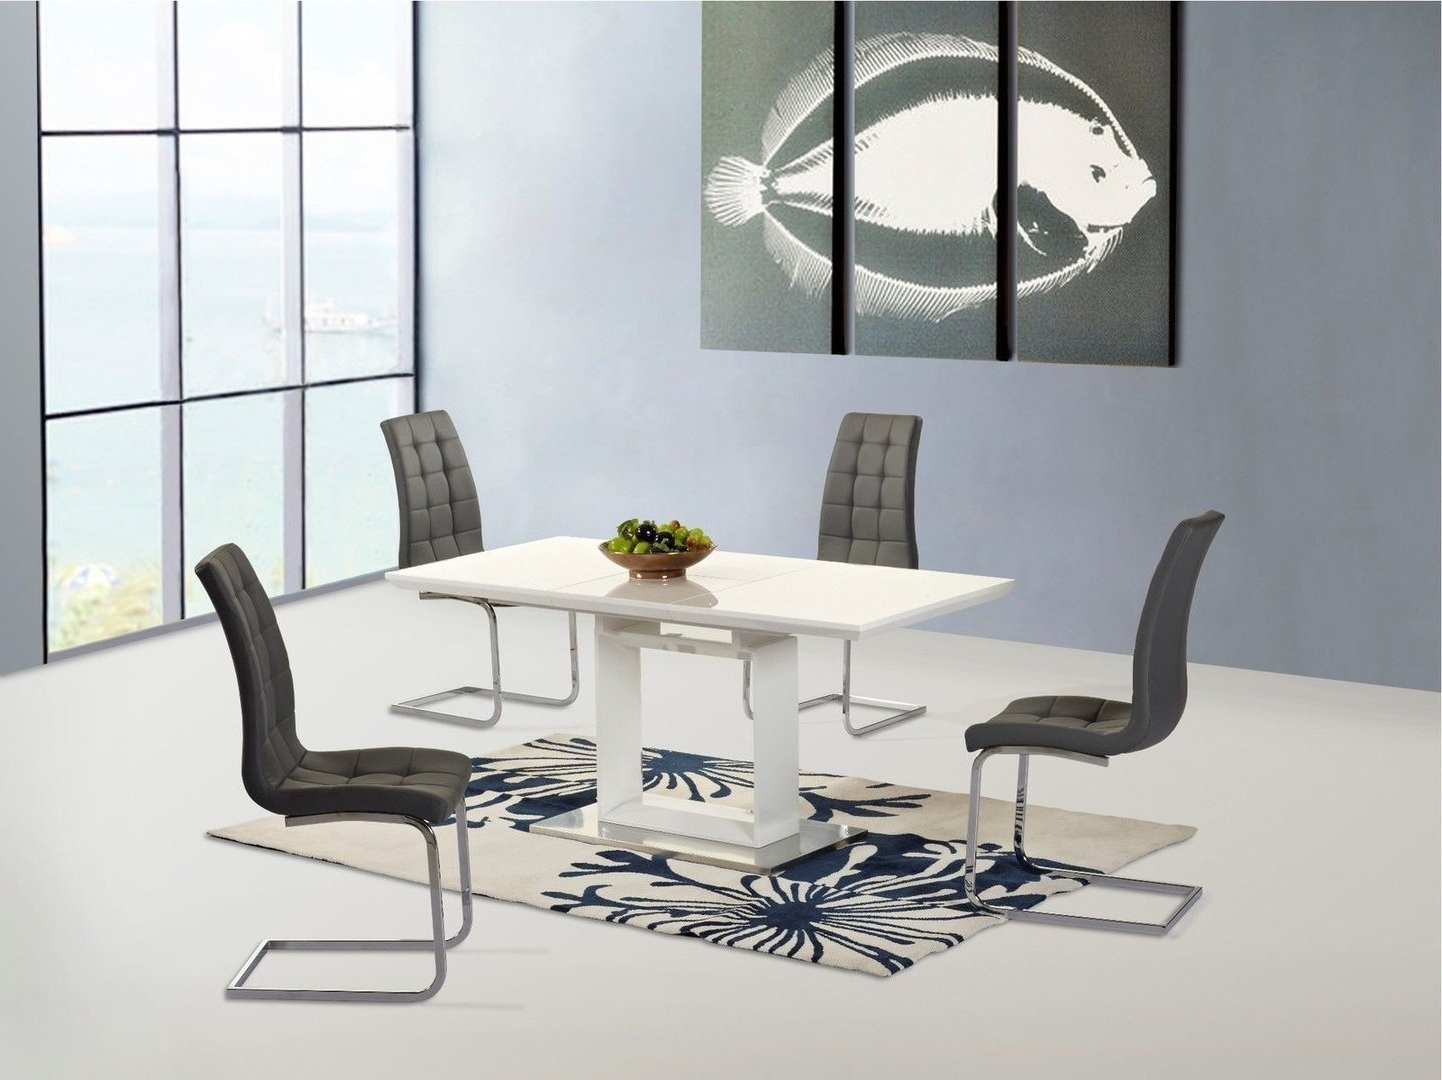 Newest New White High Gloss Extending Dining Table And 6 Grey Chairs For High Gloss White Extending Dining Tables (Gallery 11 of 25)